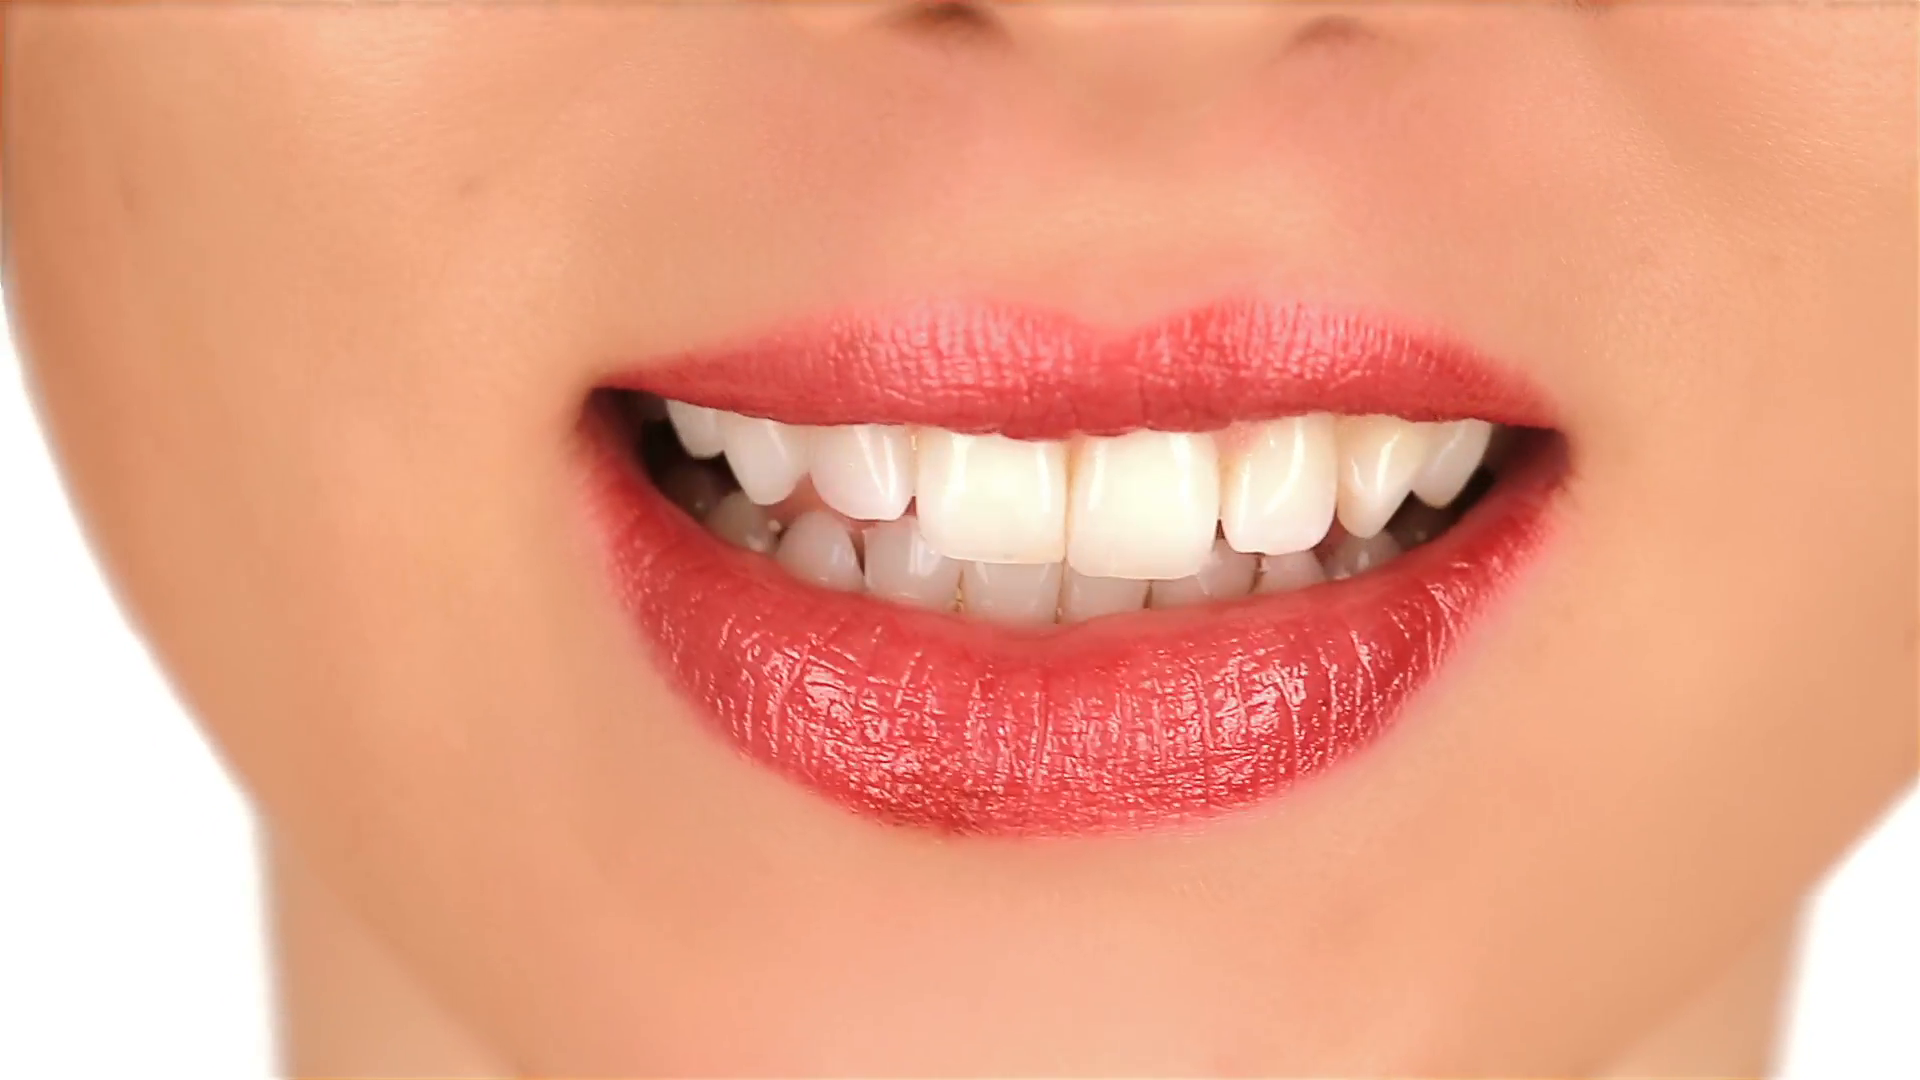 Mouth Talking PNG HD - 125530